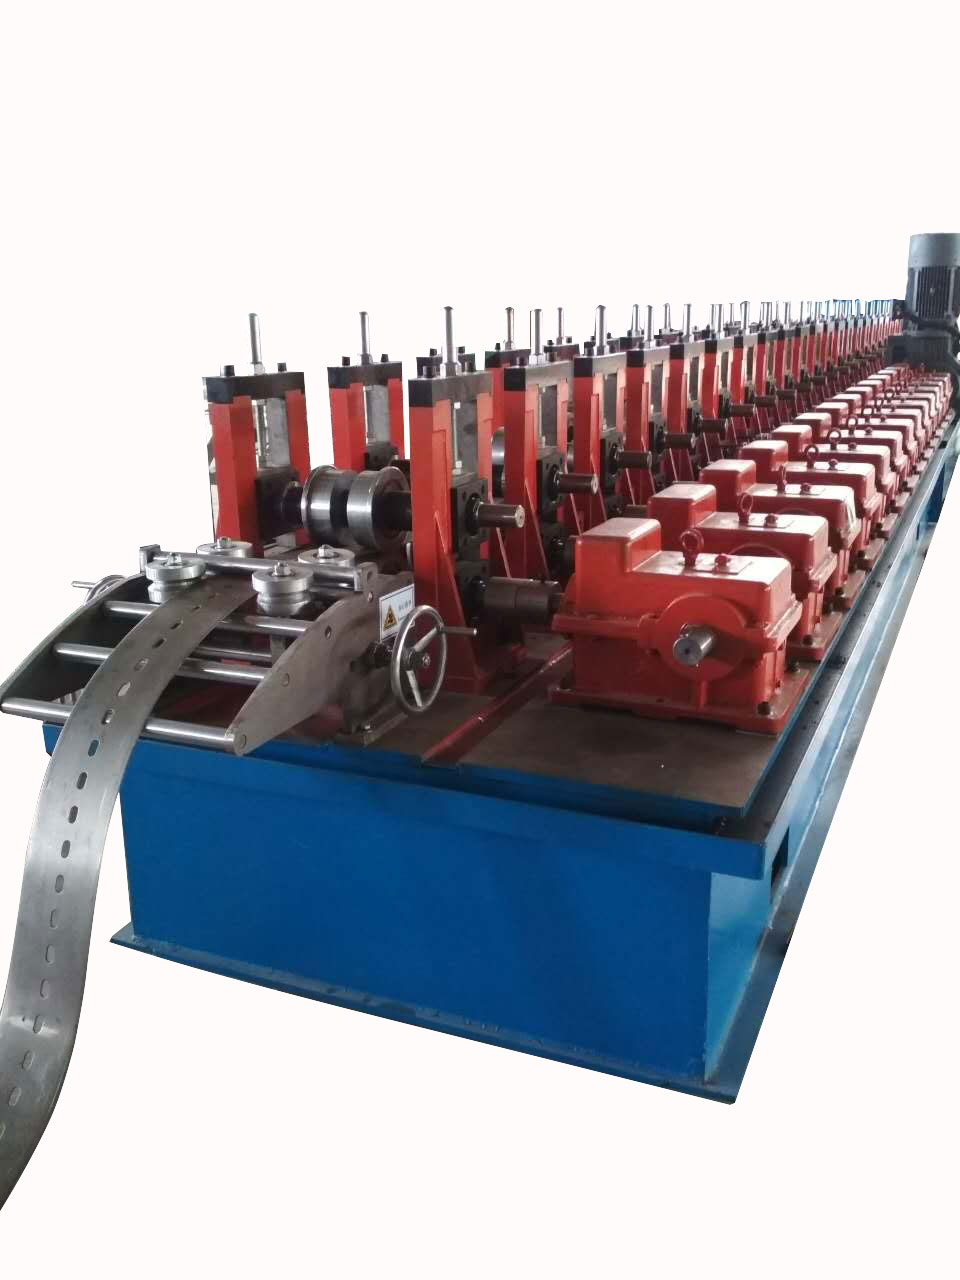 Υψηλής ποιότητας Unistrut C Channel Forming Machine